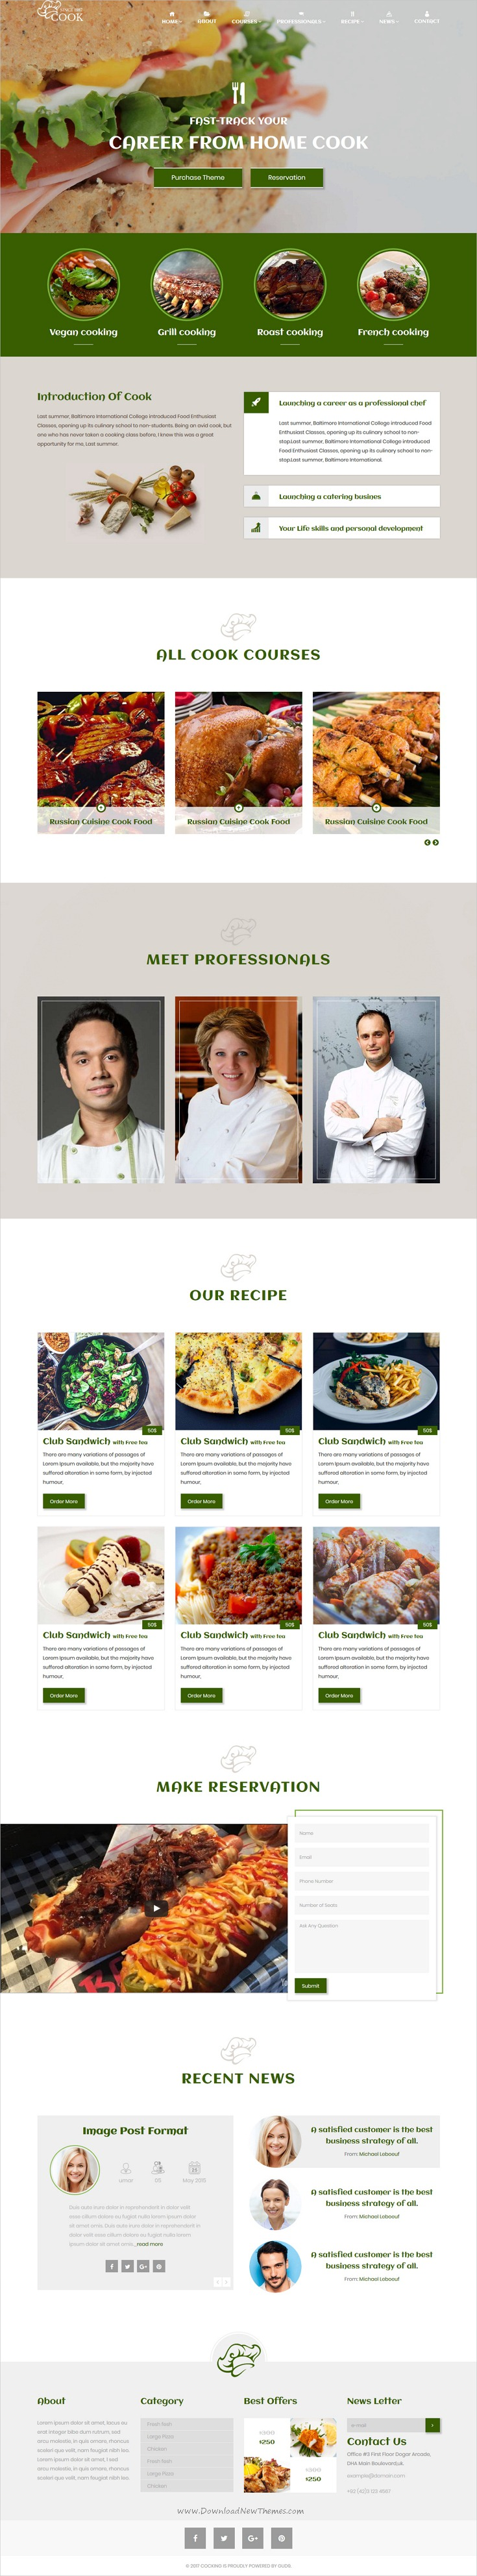 Cooking Restaurant, Food & Cafe Bootstrap Template | Cooking ...